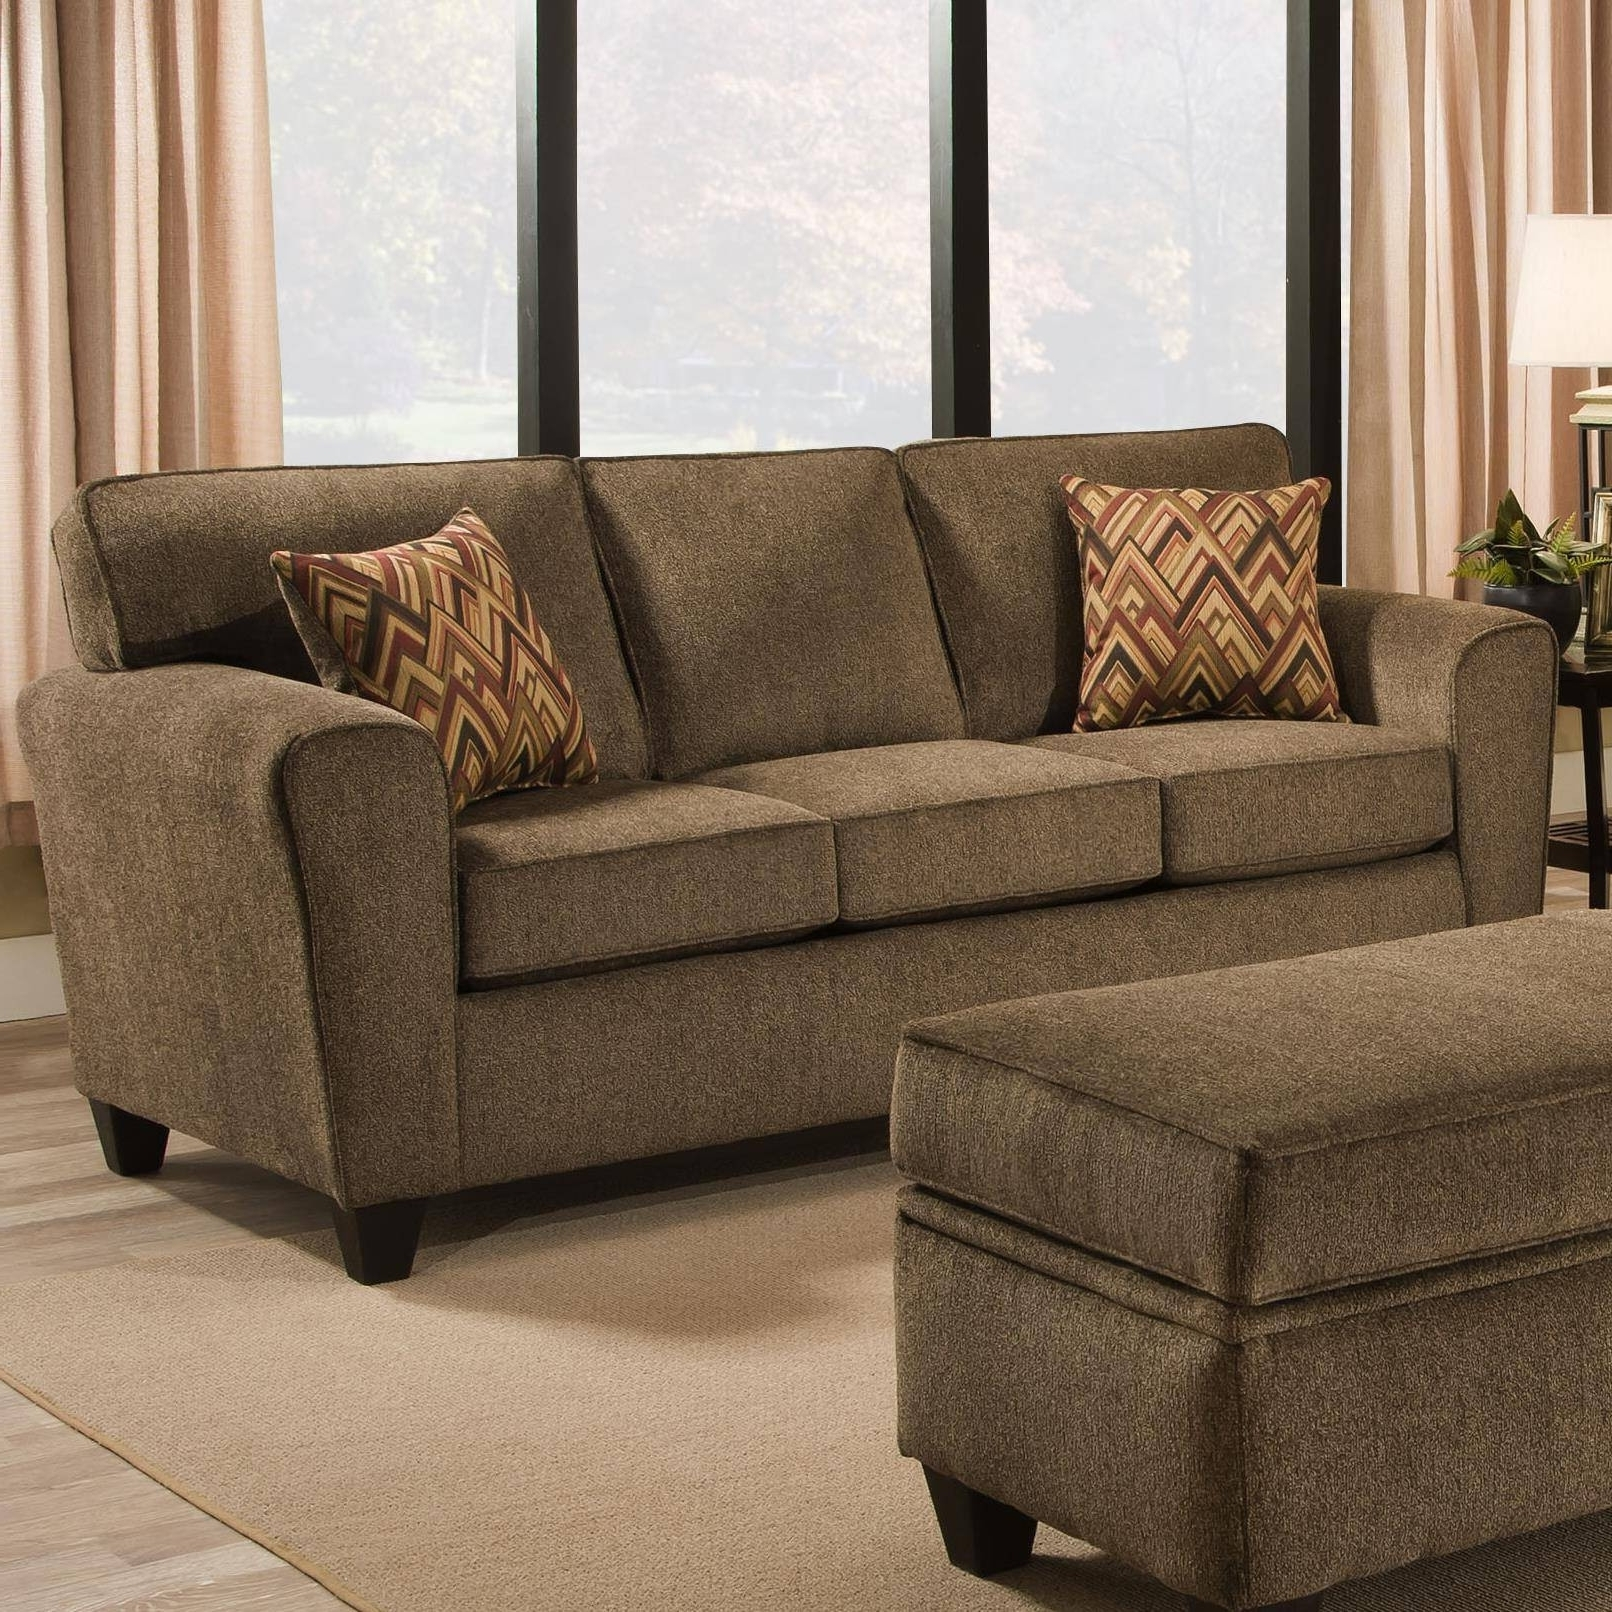 Fashionable Down Filled Sectional Sofas Regarding Furniture : Ethan Allen Down Filled Sofa Beautiful Sectional Sofas (View 9 of 20)